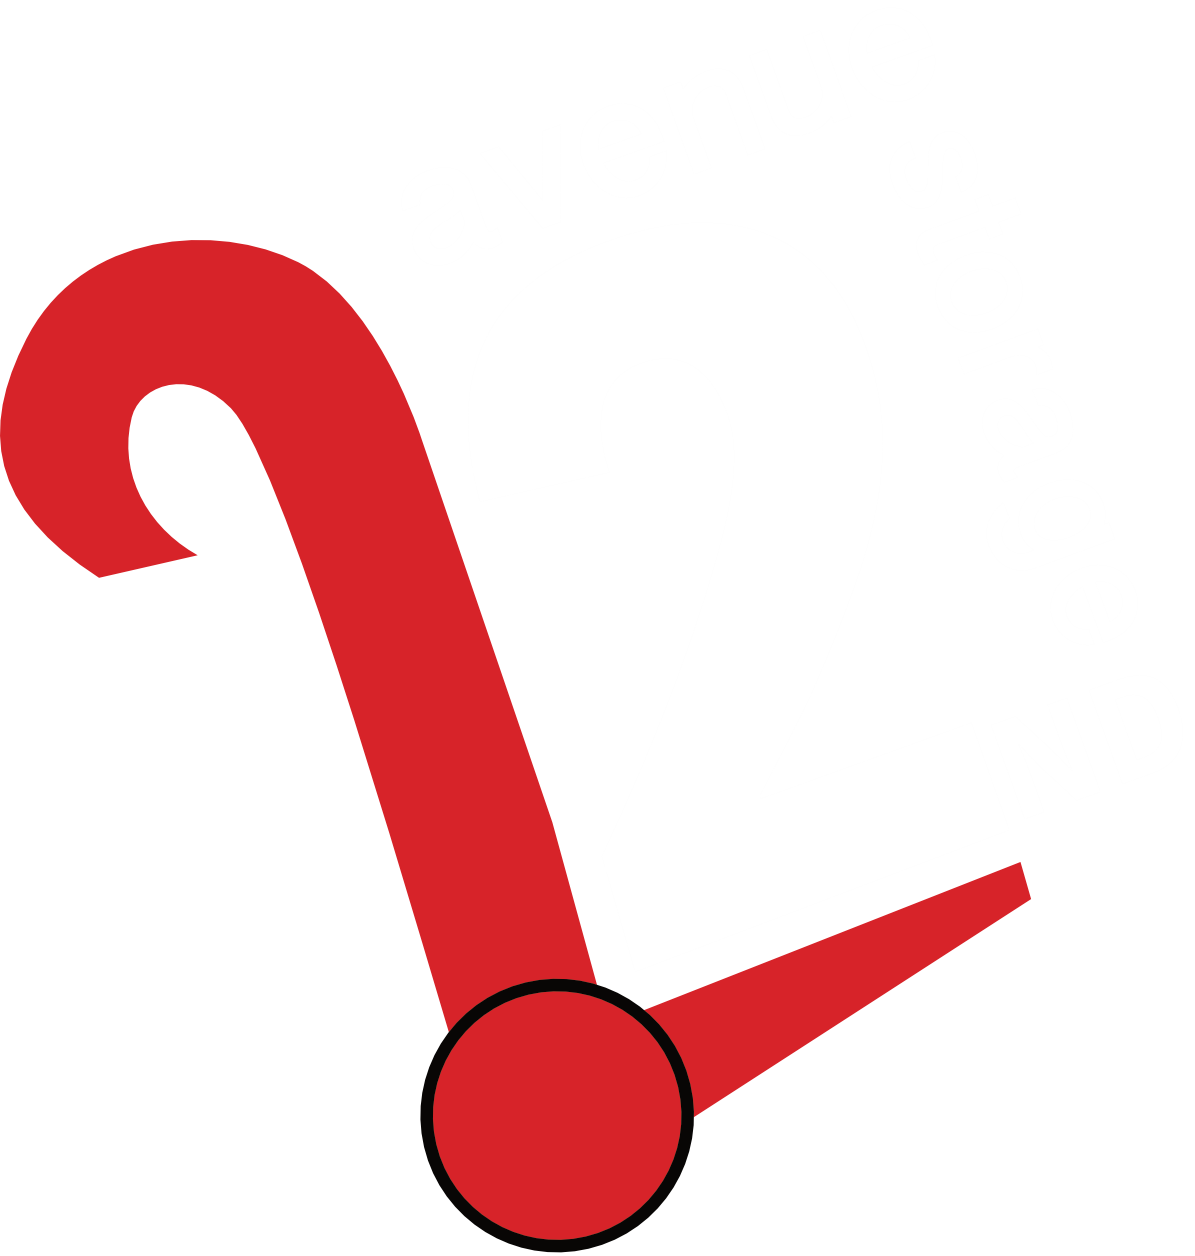 2nd Avenue Storage